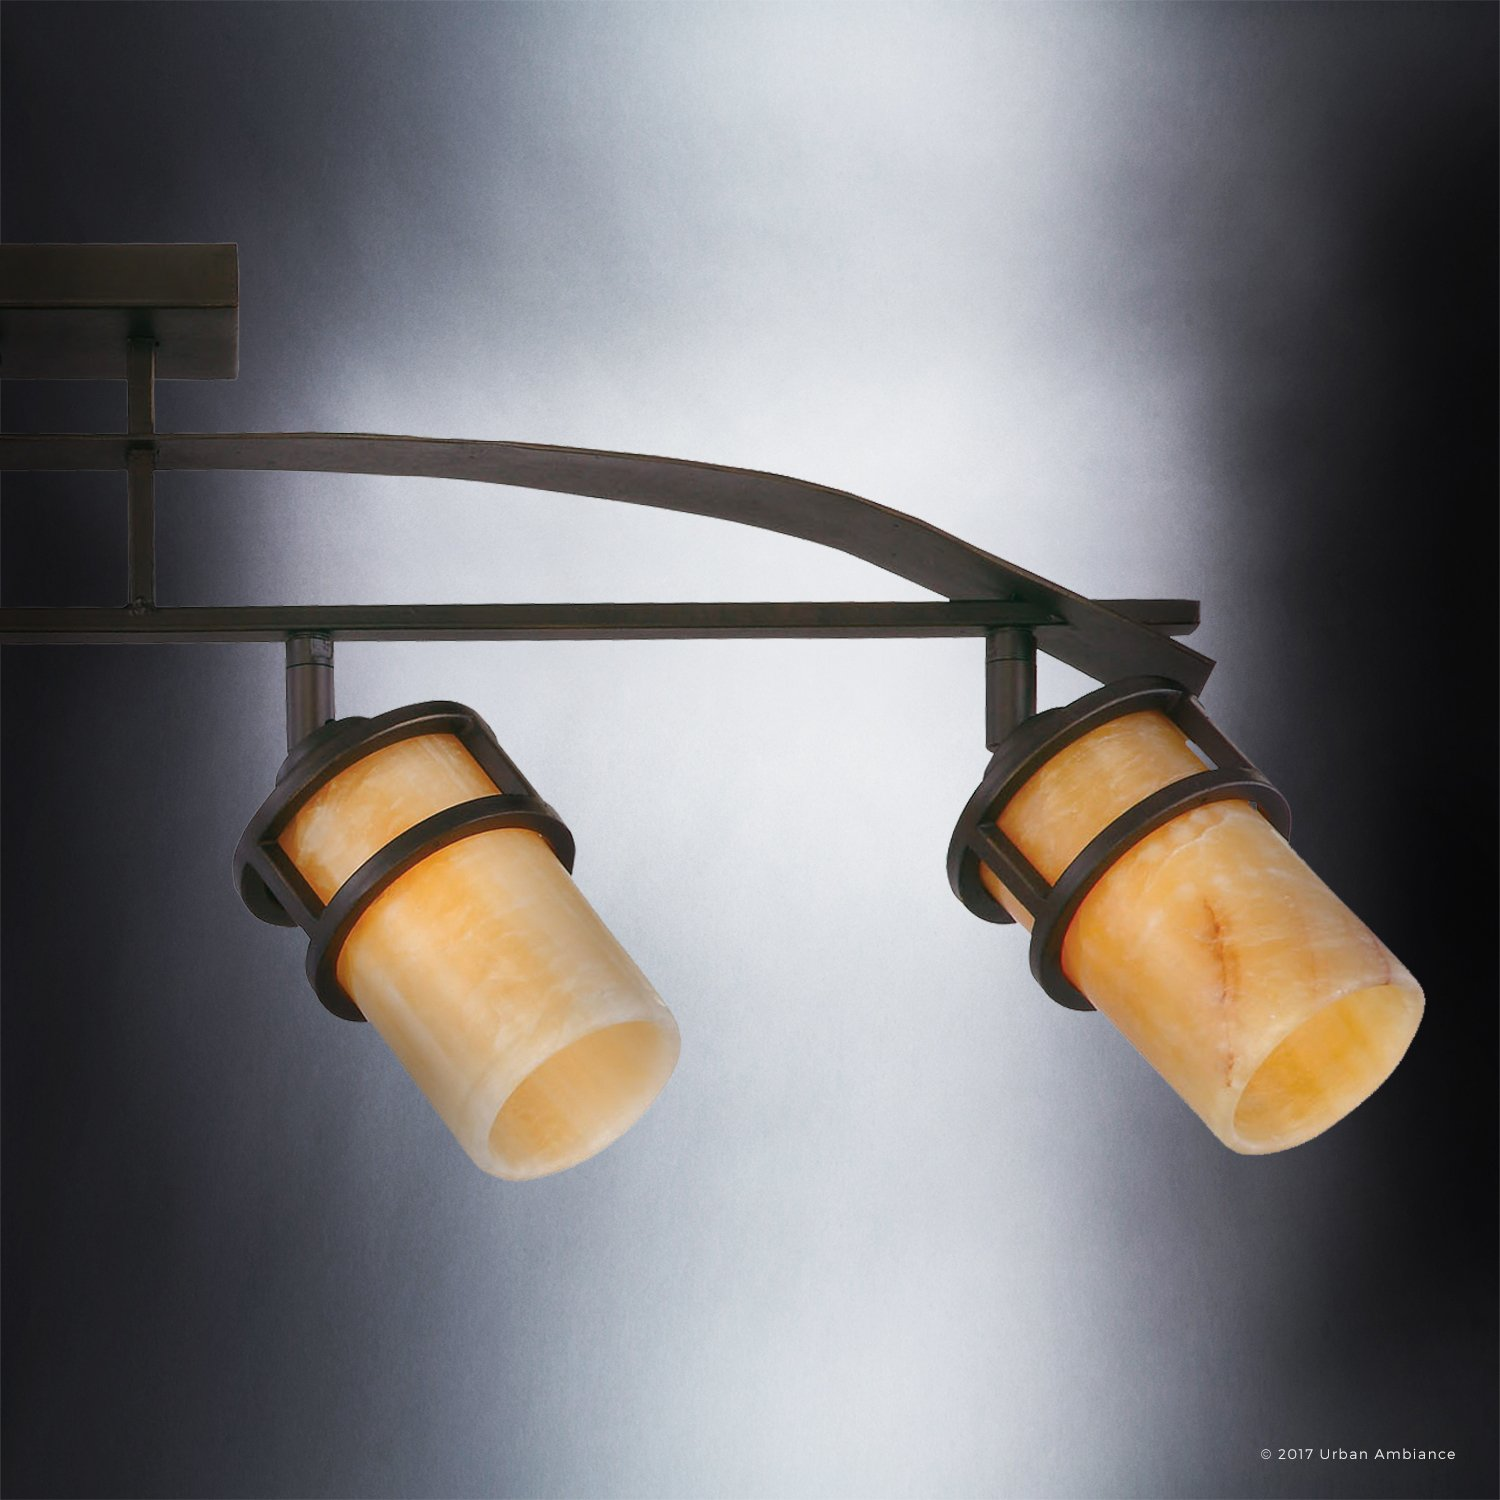 Luxury Rustic Track Lighting, Medium Size: 14.5''H x 36''W, with Craftsman Style Elements, Banded Wrought Iron Design, Royal Bronze Finish and Butterscotch Onyx Stone Shade, UQL2419 by Urban Ambiance by Urban Ambiance (Image #5)